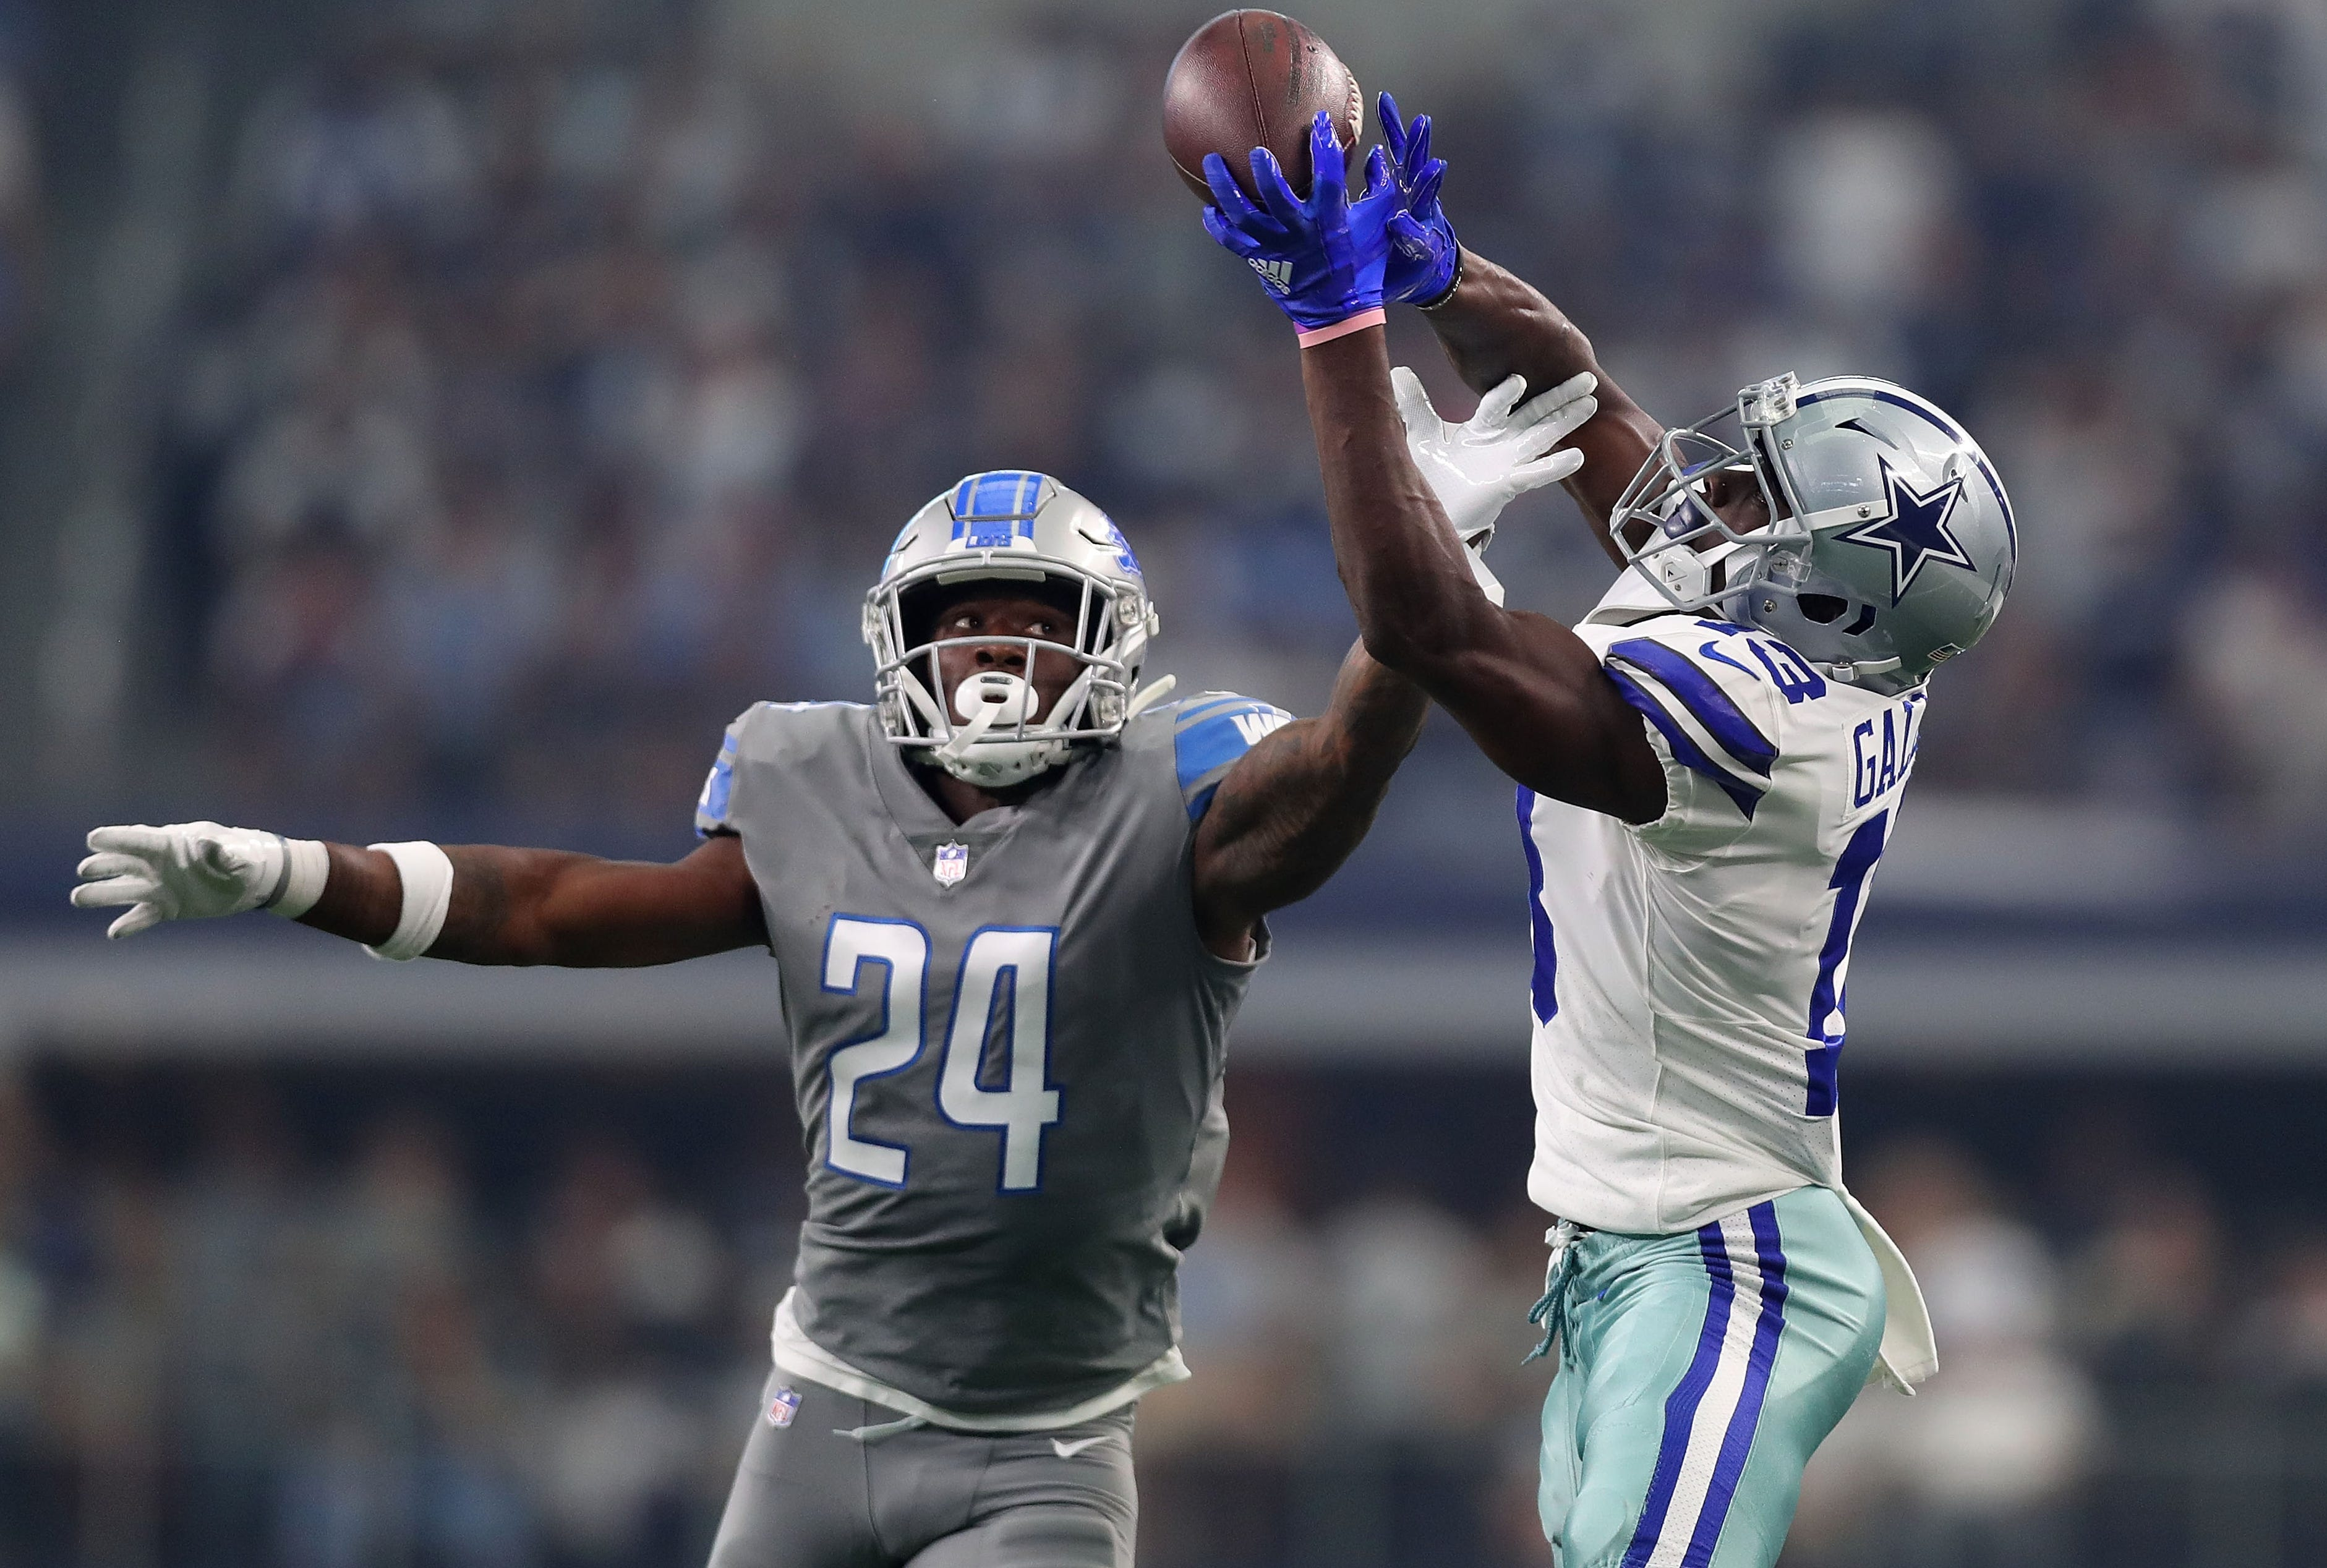 Lions cornerback Nevin Lawson tries to break up the pass caught by Cowboys wide receiver Michael Gallup in the first quarter in Arlington, Texas, Sunday, Sept. 30, 2018.